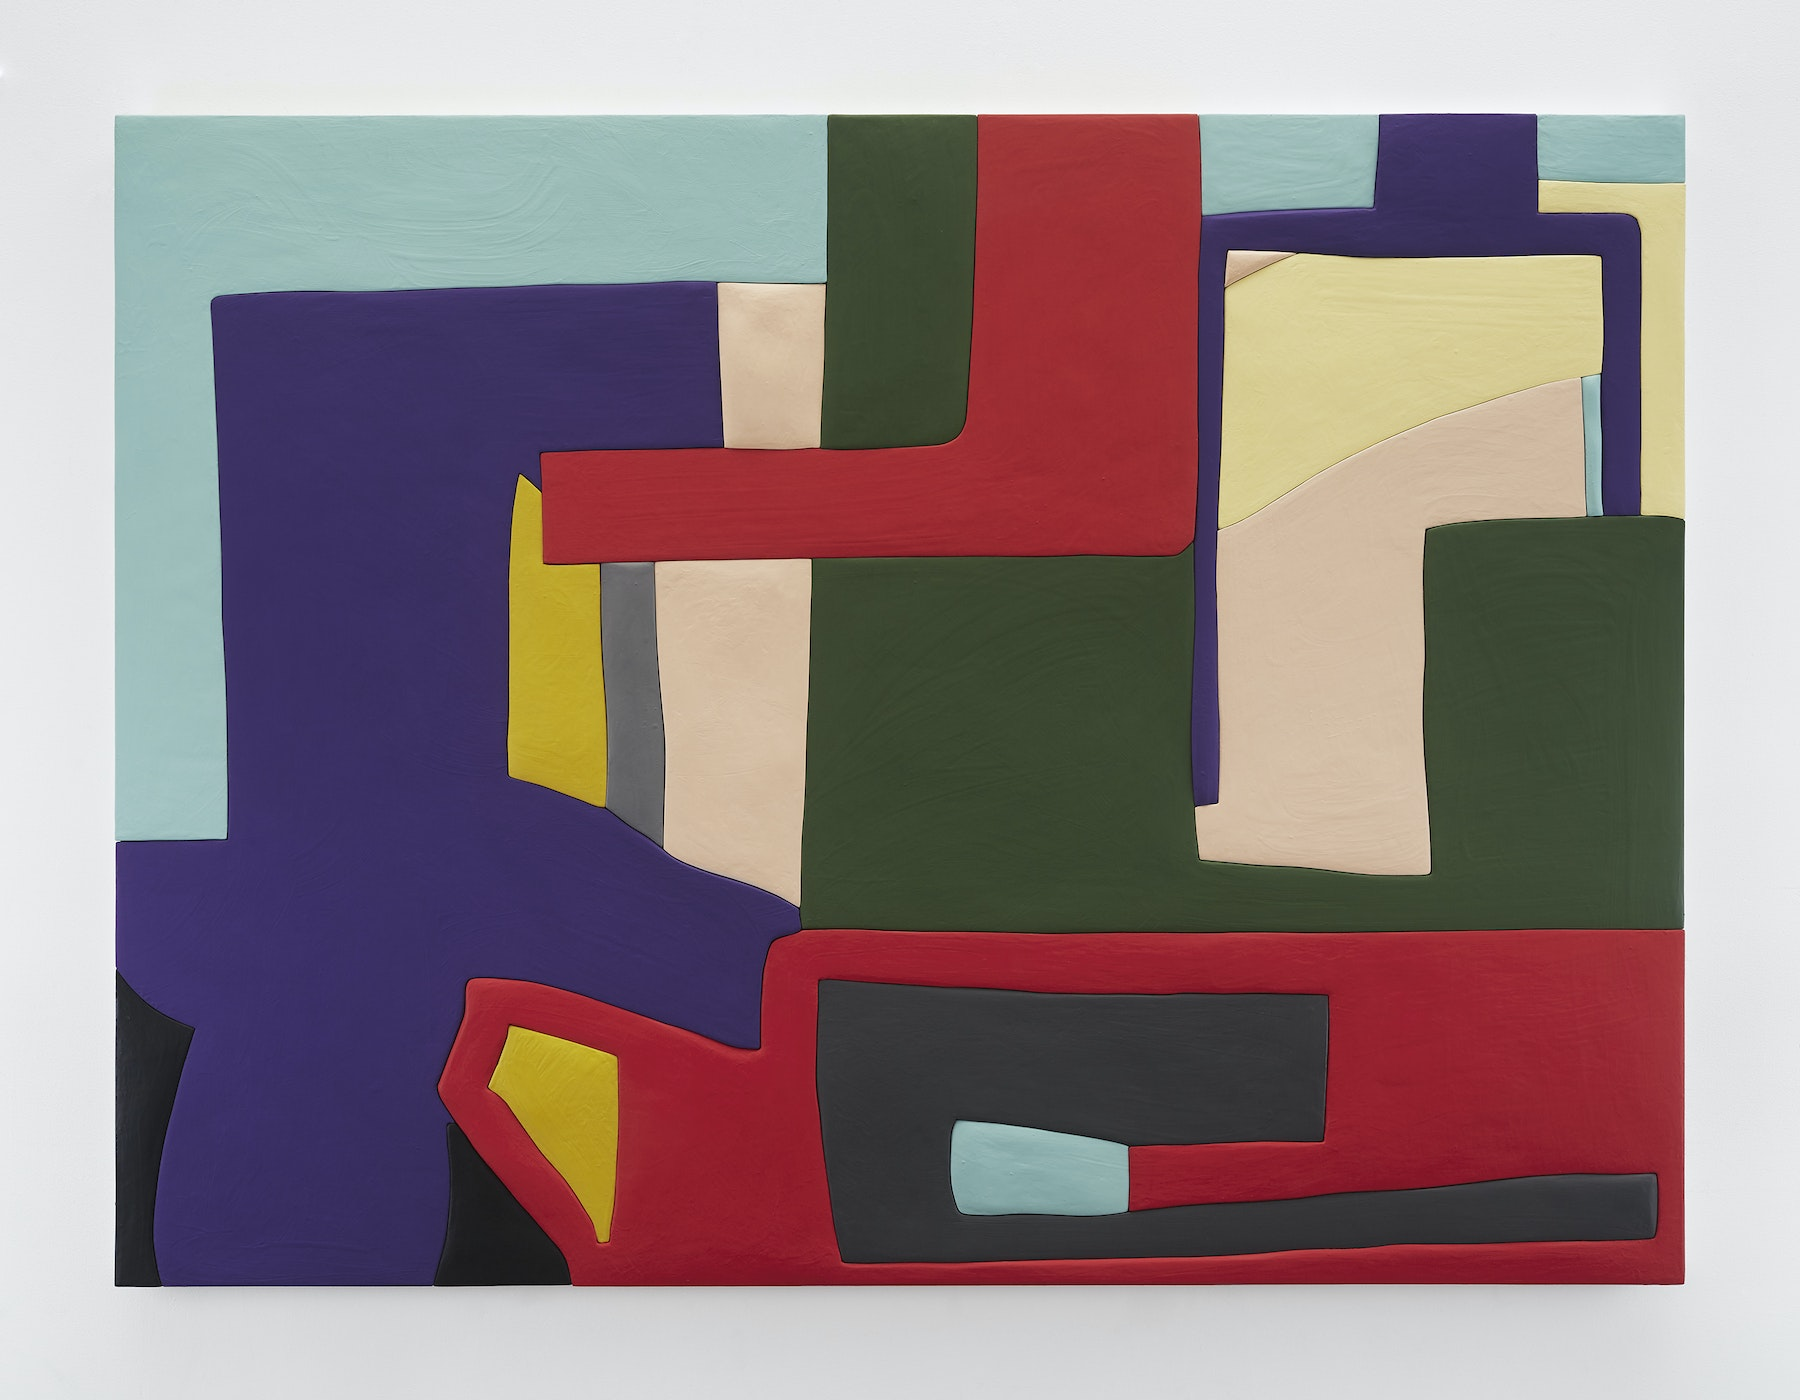 """Sadie Benning """"Untitled 1,"""" 2019 Wood, aqua resin, casein, and acrylic gouache 53 x 71"""" [HxW] (134.62 x 180.34 cm) Inventory #BEN855 Courtesy of the artist and Vielmetter Los Angeles Photocredit: Chris Austin"""